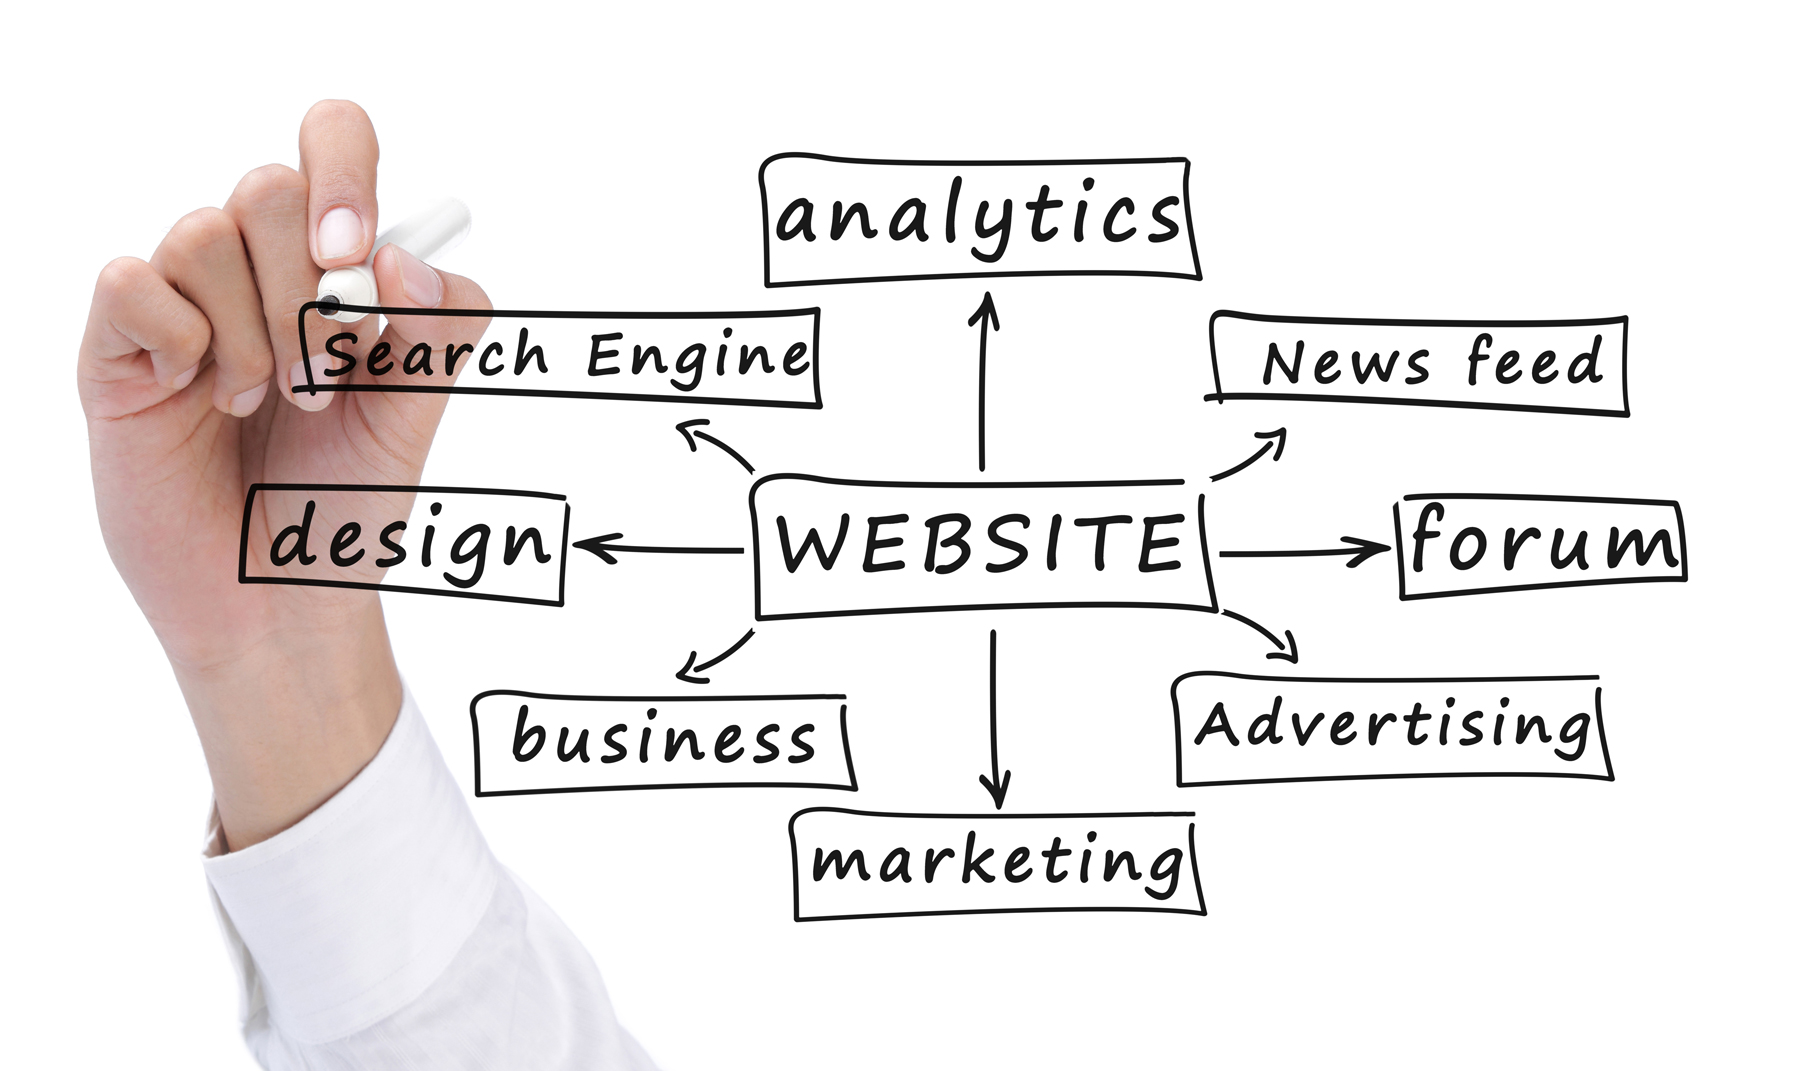 Your Website is the main hub of all marketing online and offline